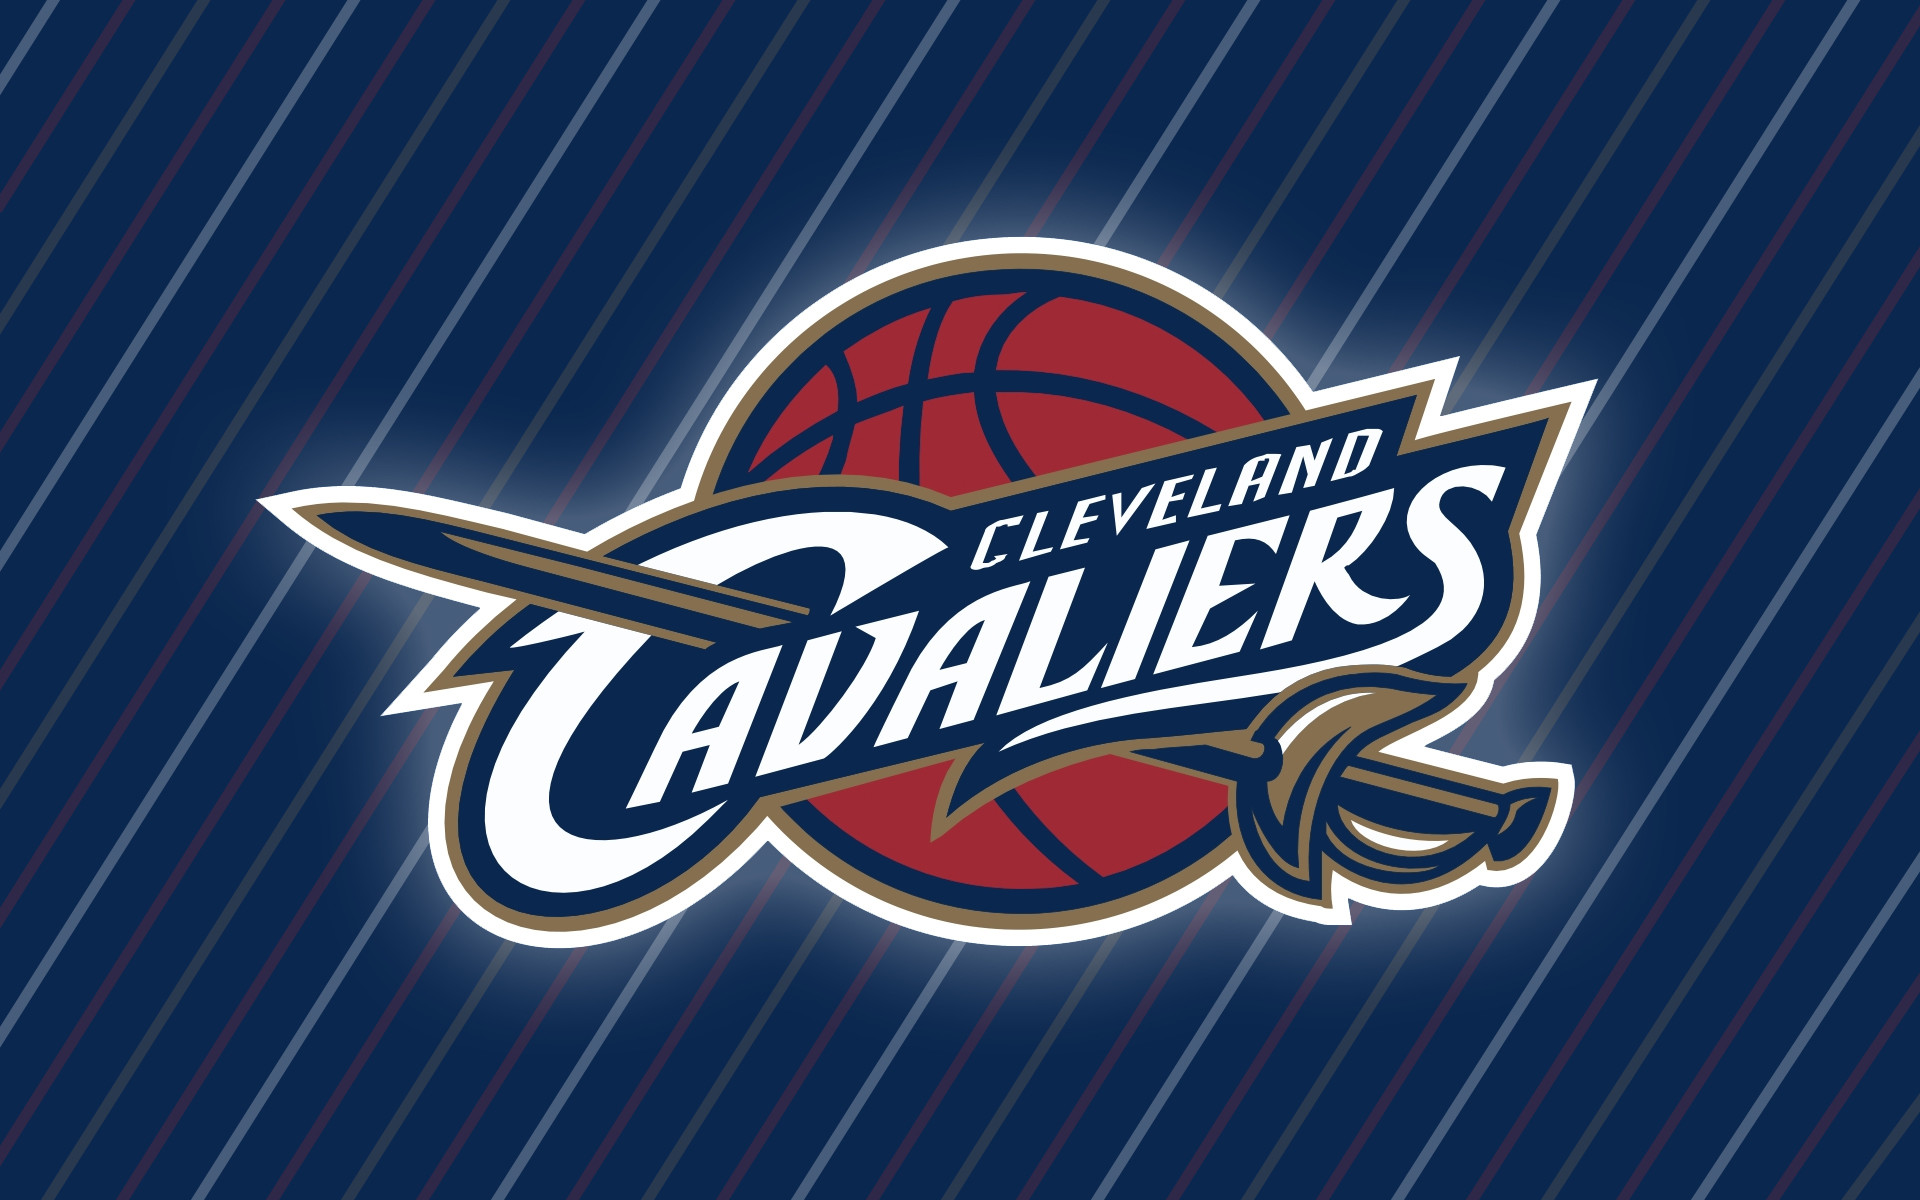 Res: 1920x1200, Logo cleveland cavaliers wallpaper.